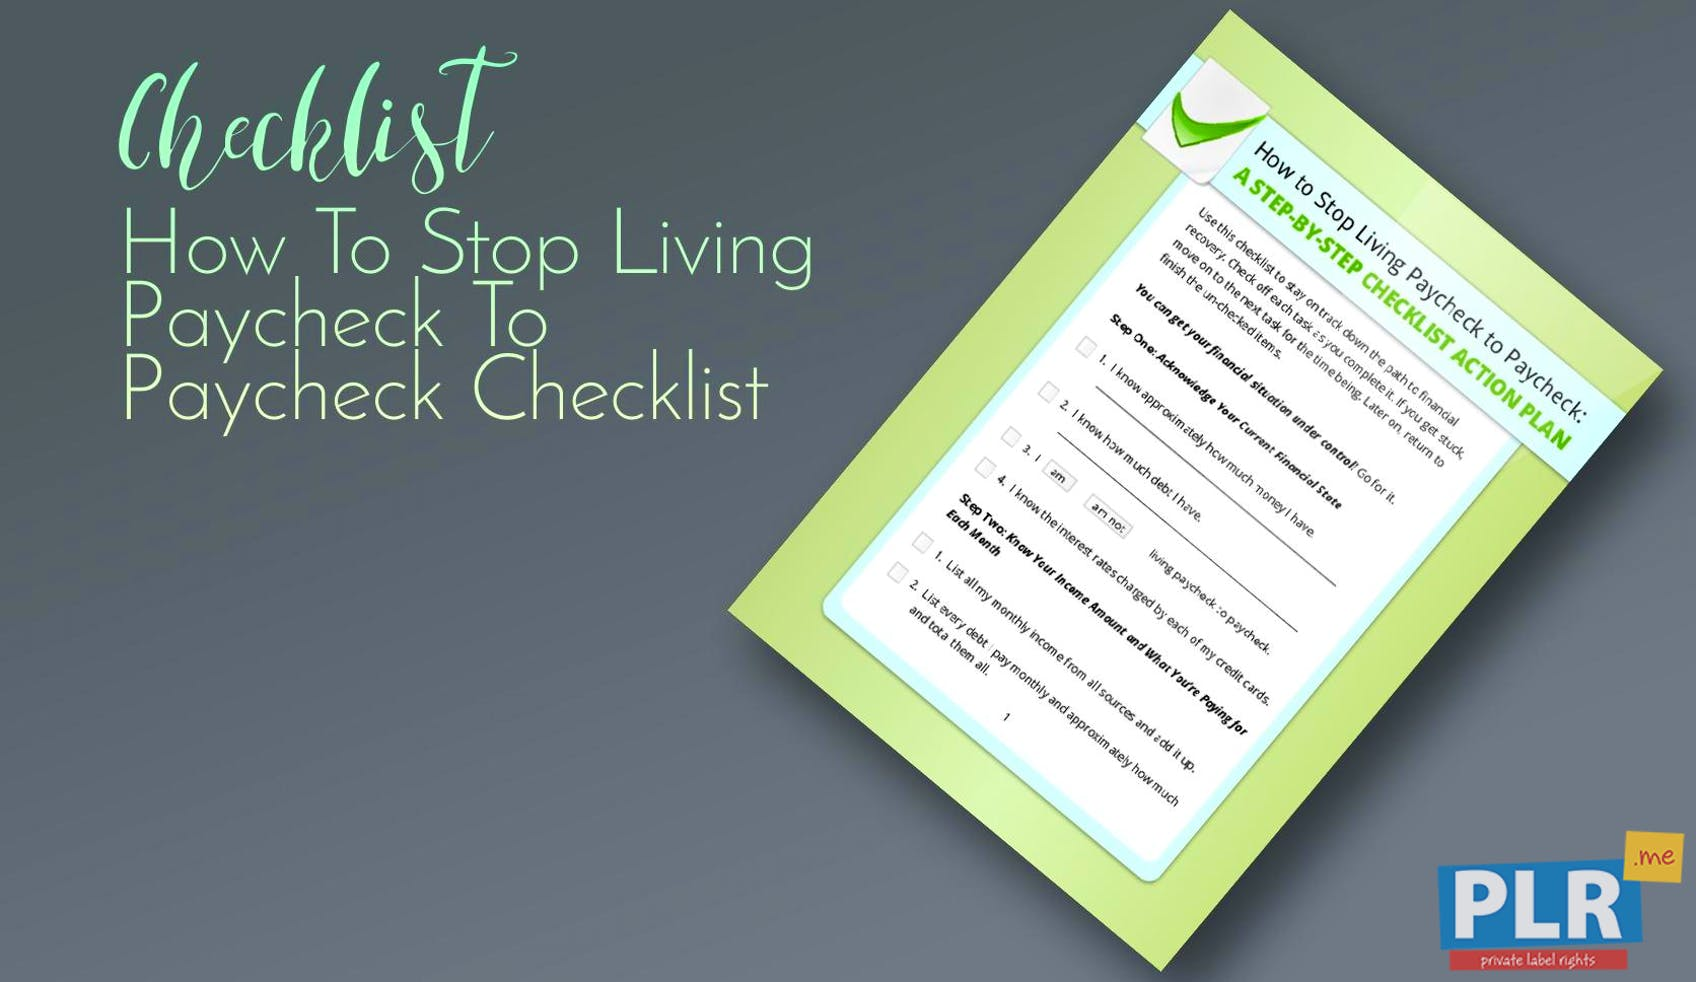 How To Stop Living Paycheck To Paycheck Checklist